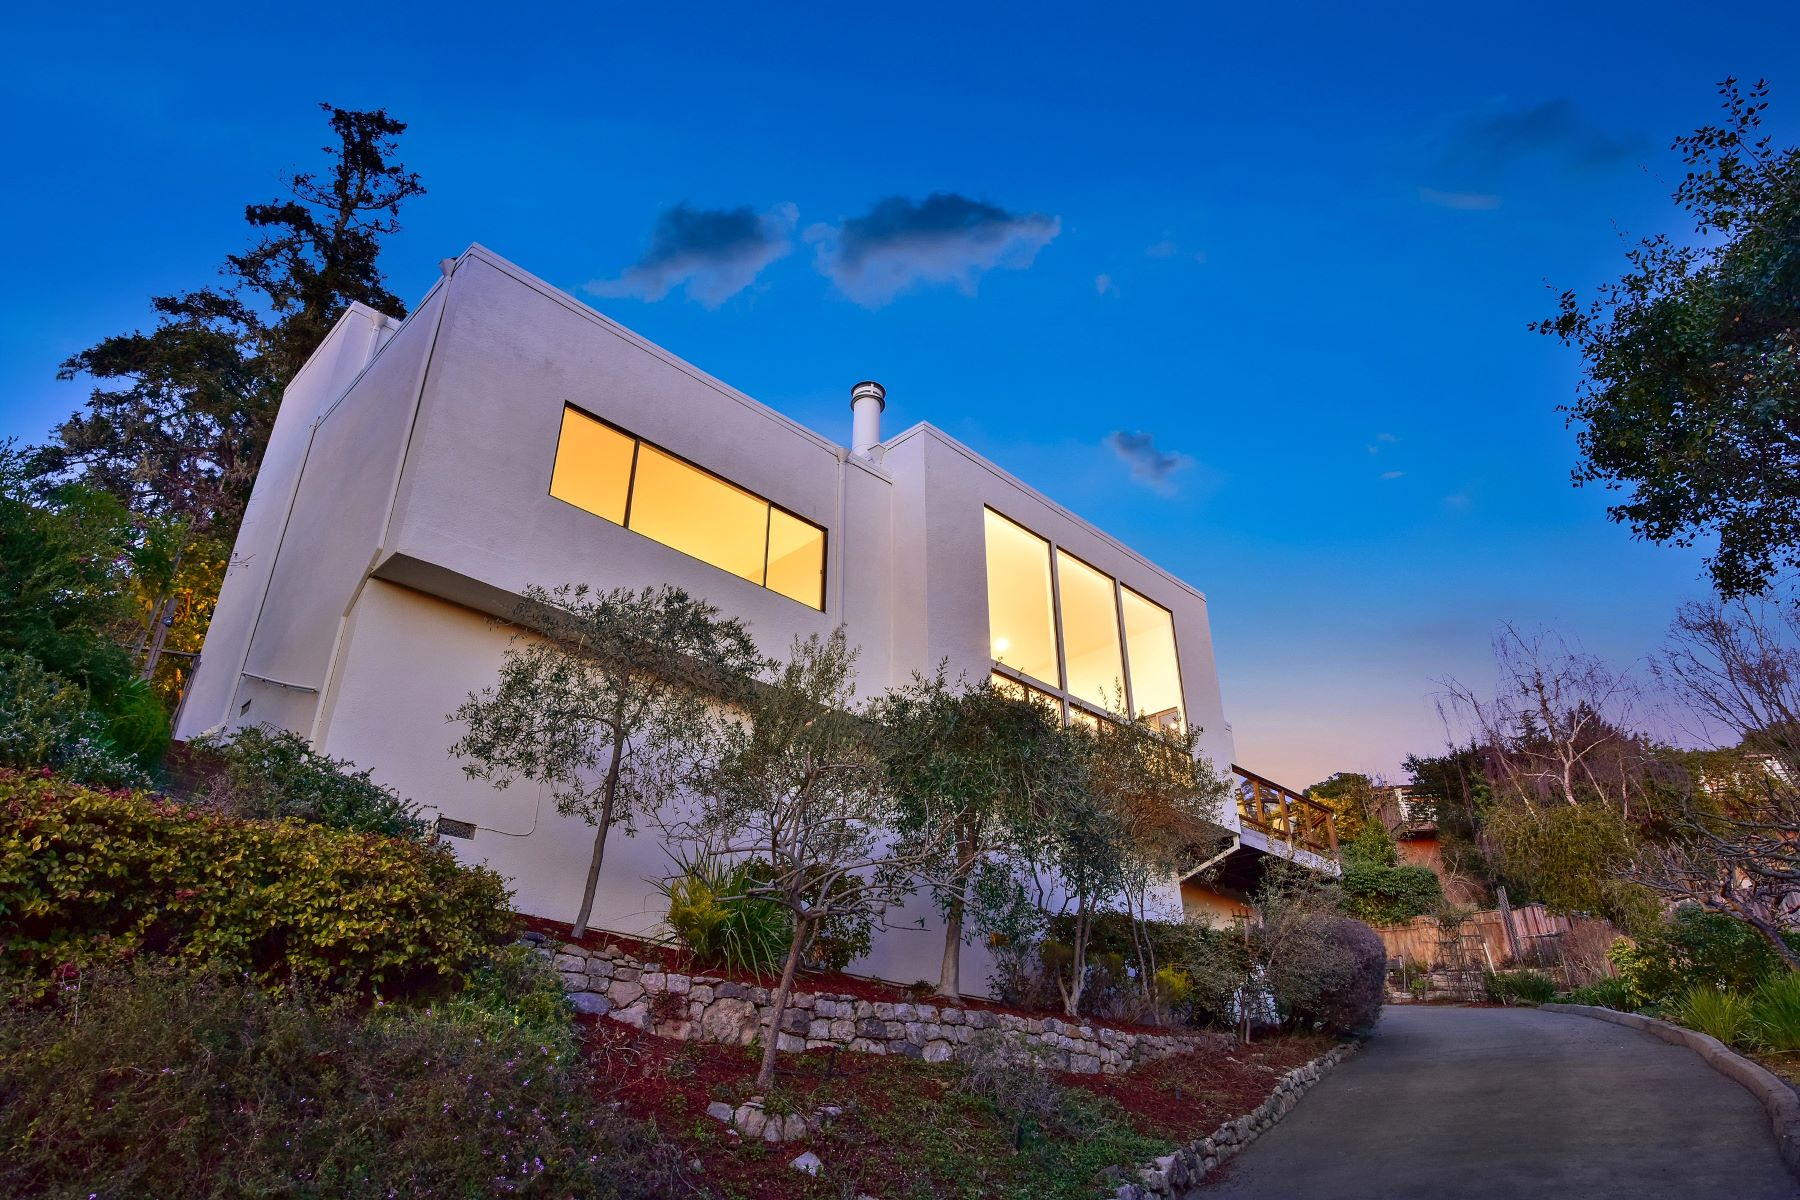 Single Family Homes for Sale at Updated Contemporary With Views 6000 Wood Drive Oakland, California 94611 United States